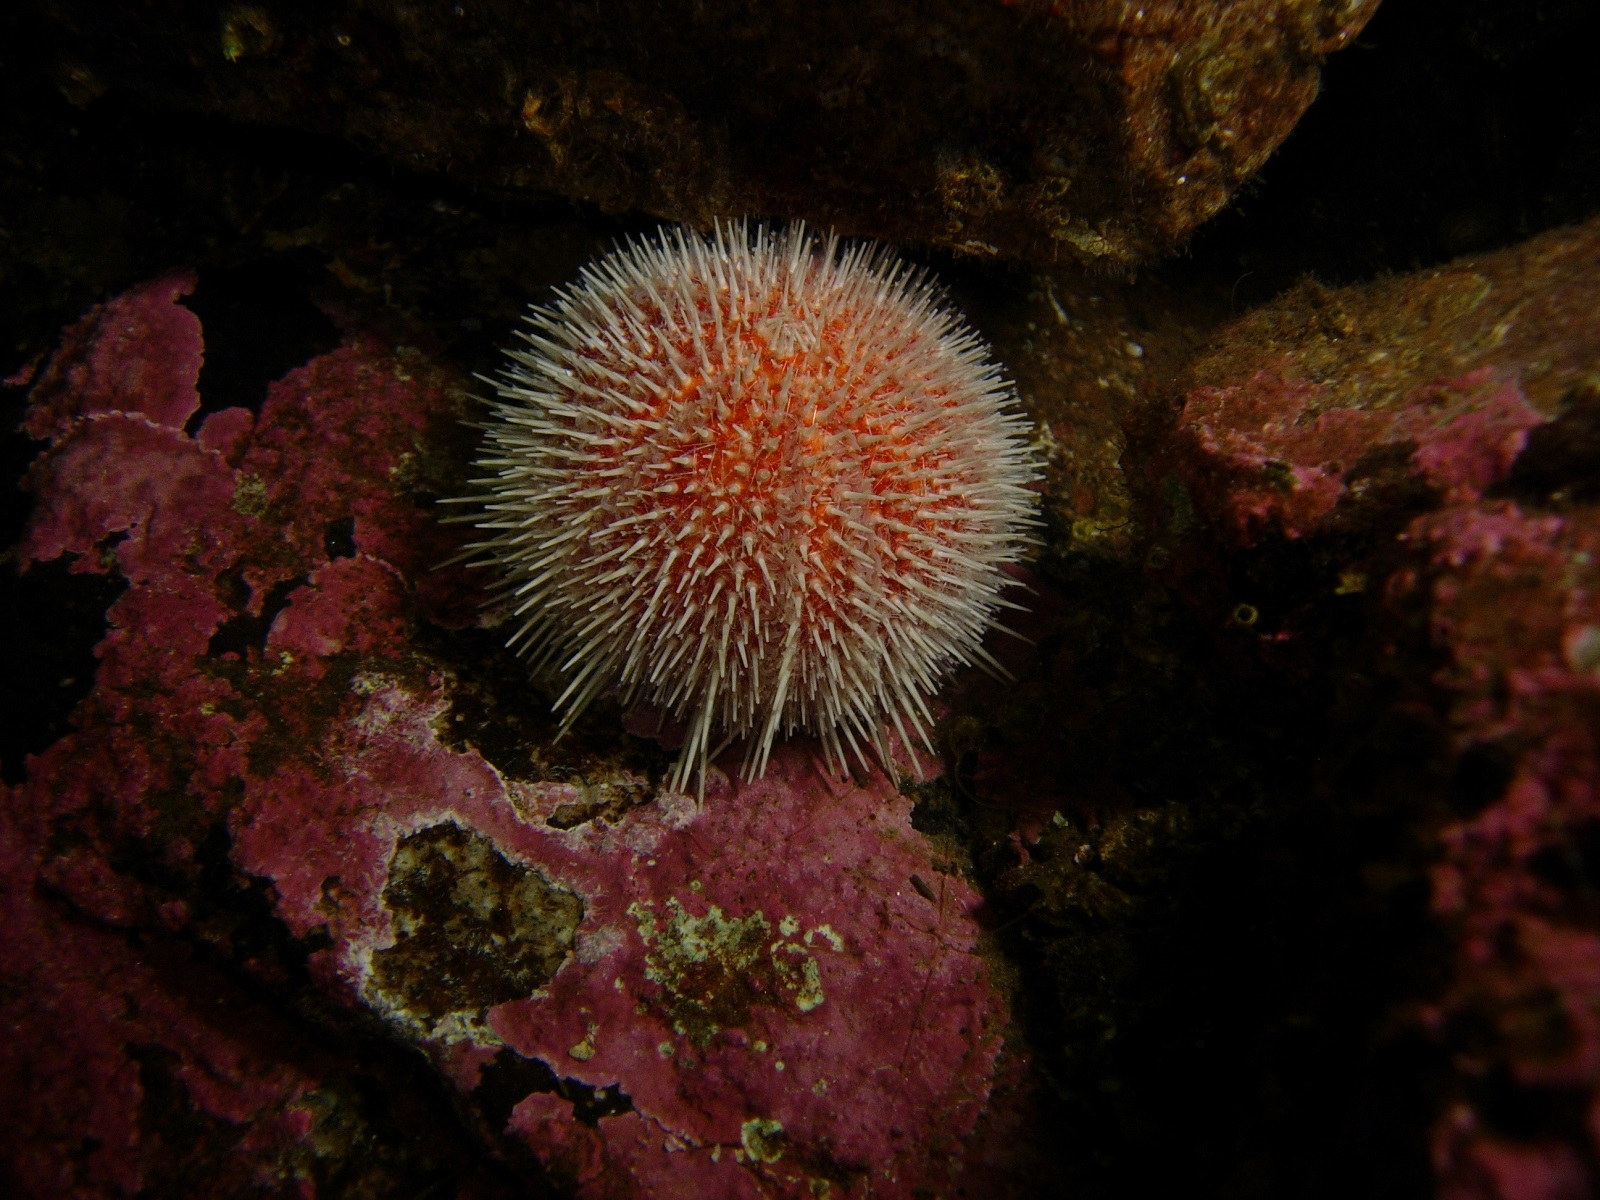 Sea urchin eating corals betting humaid j s al dhaheri capital investment